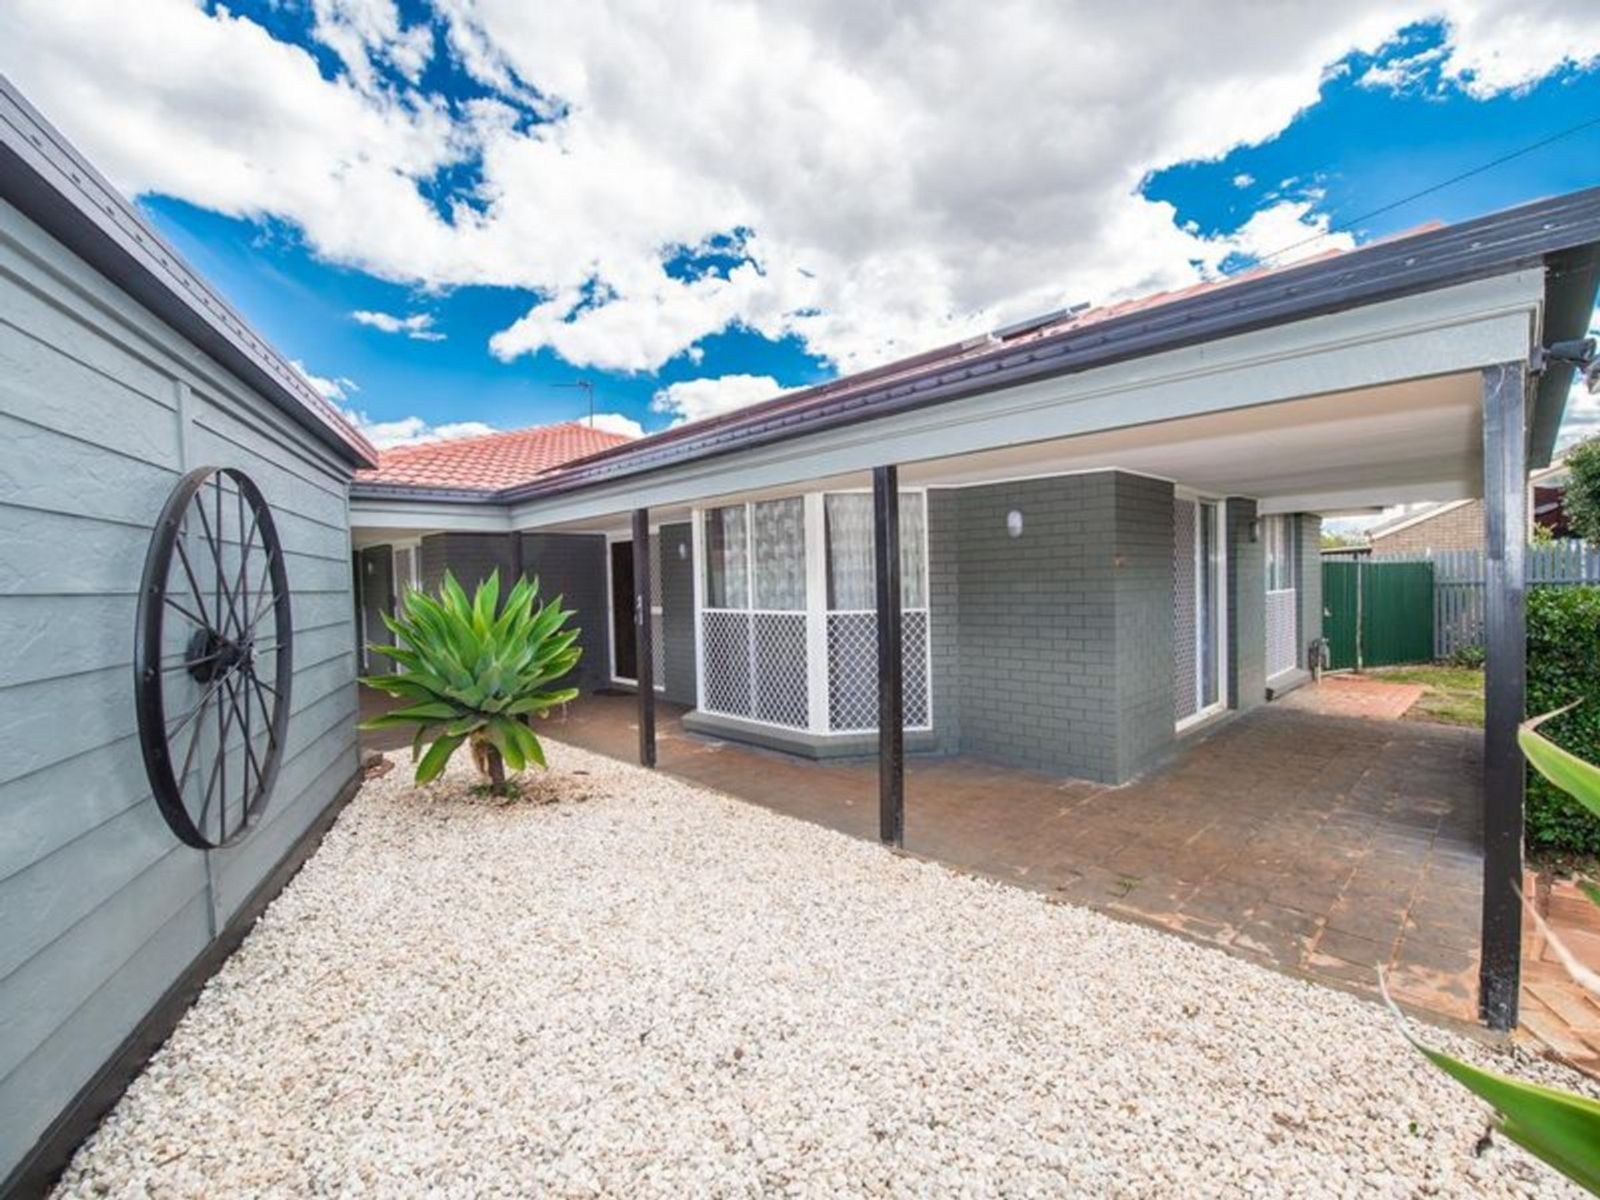 10 Kingsford Smith Drive, Wilsonton, QLD 4350